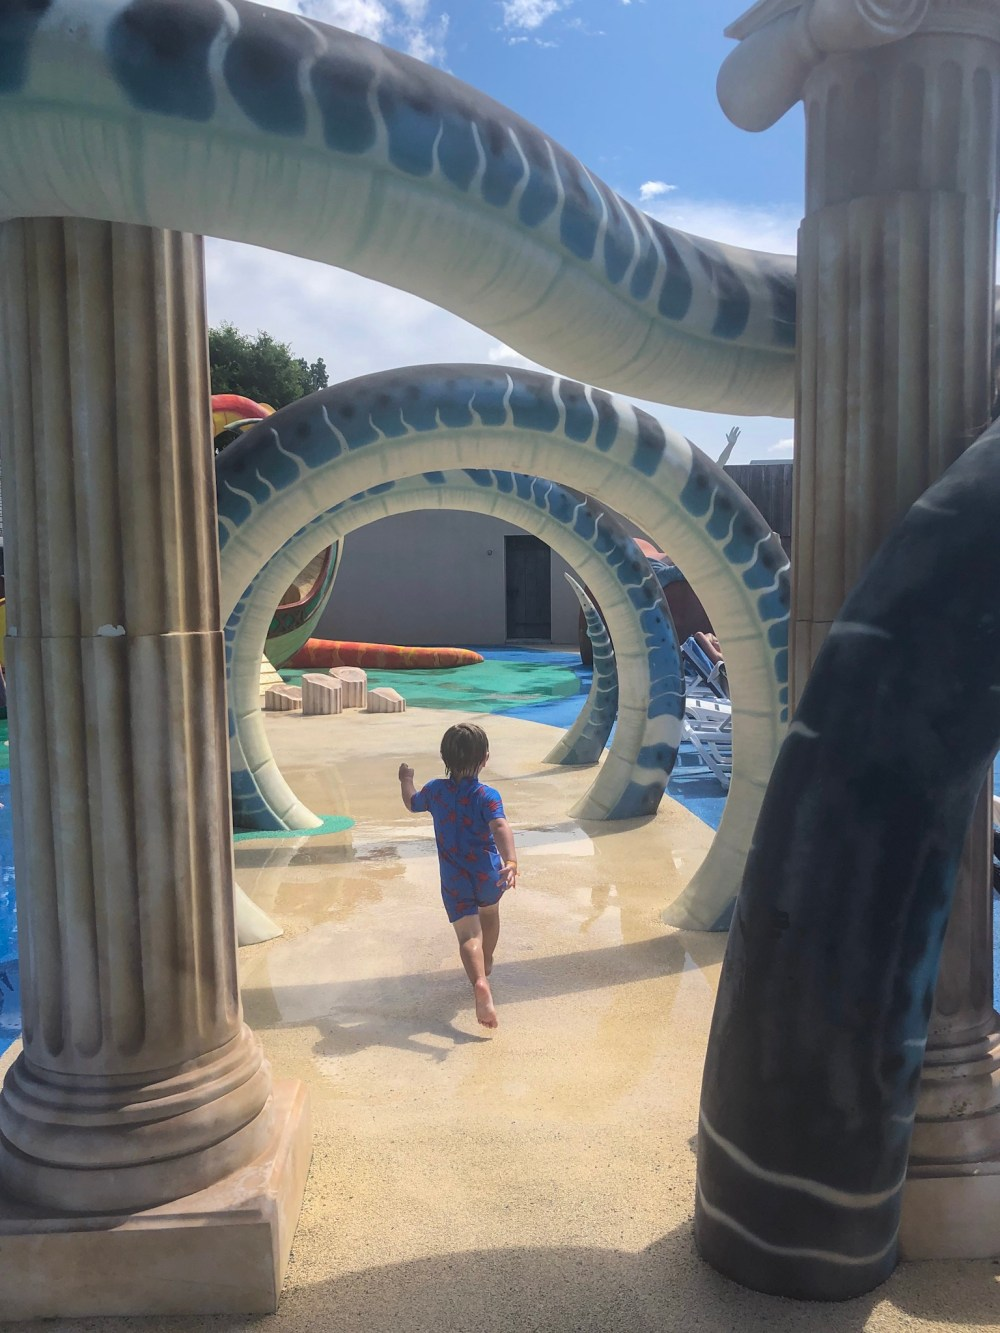 Waterpark at Clarys Plage